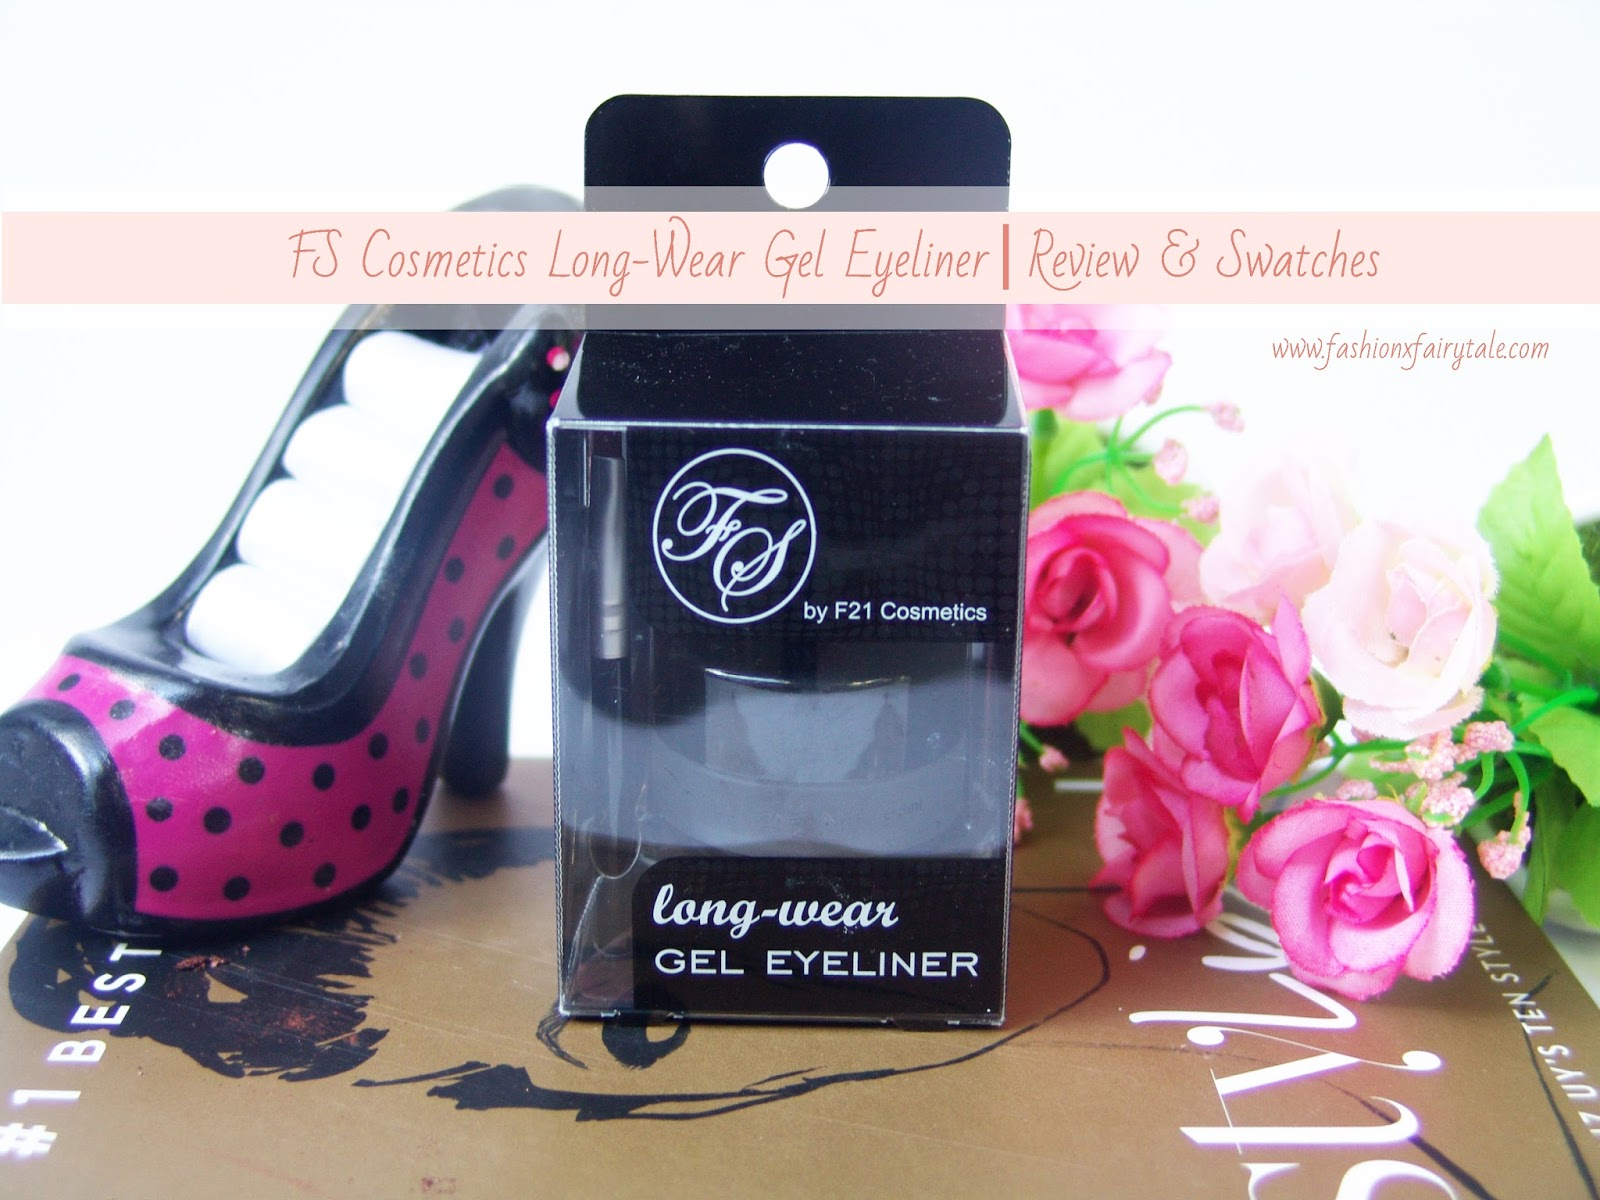 FS Cosmetics Long-Wear Gel Eyeliner | Review & Swatches